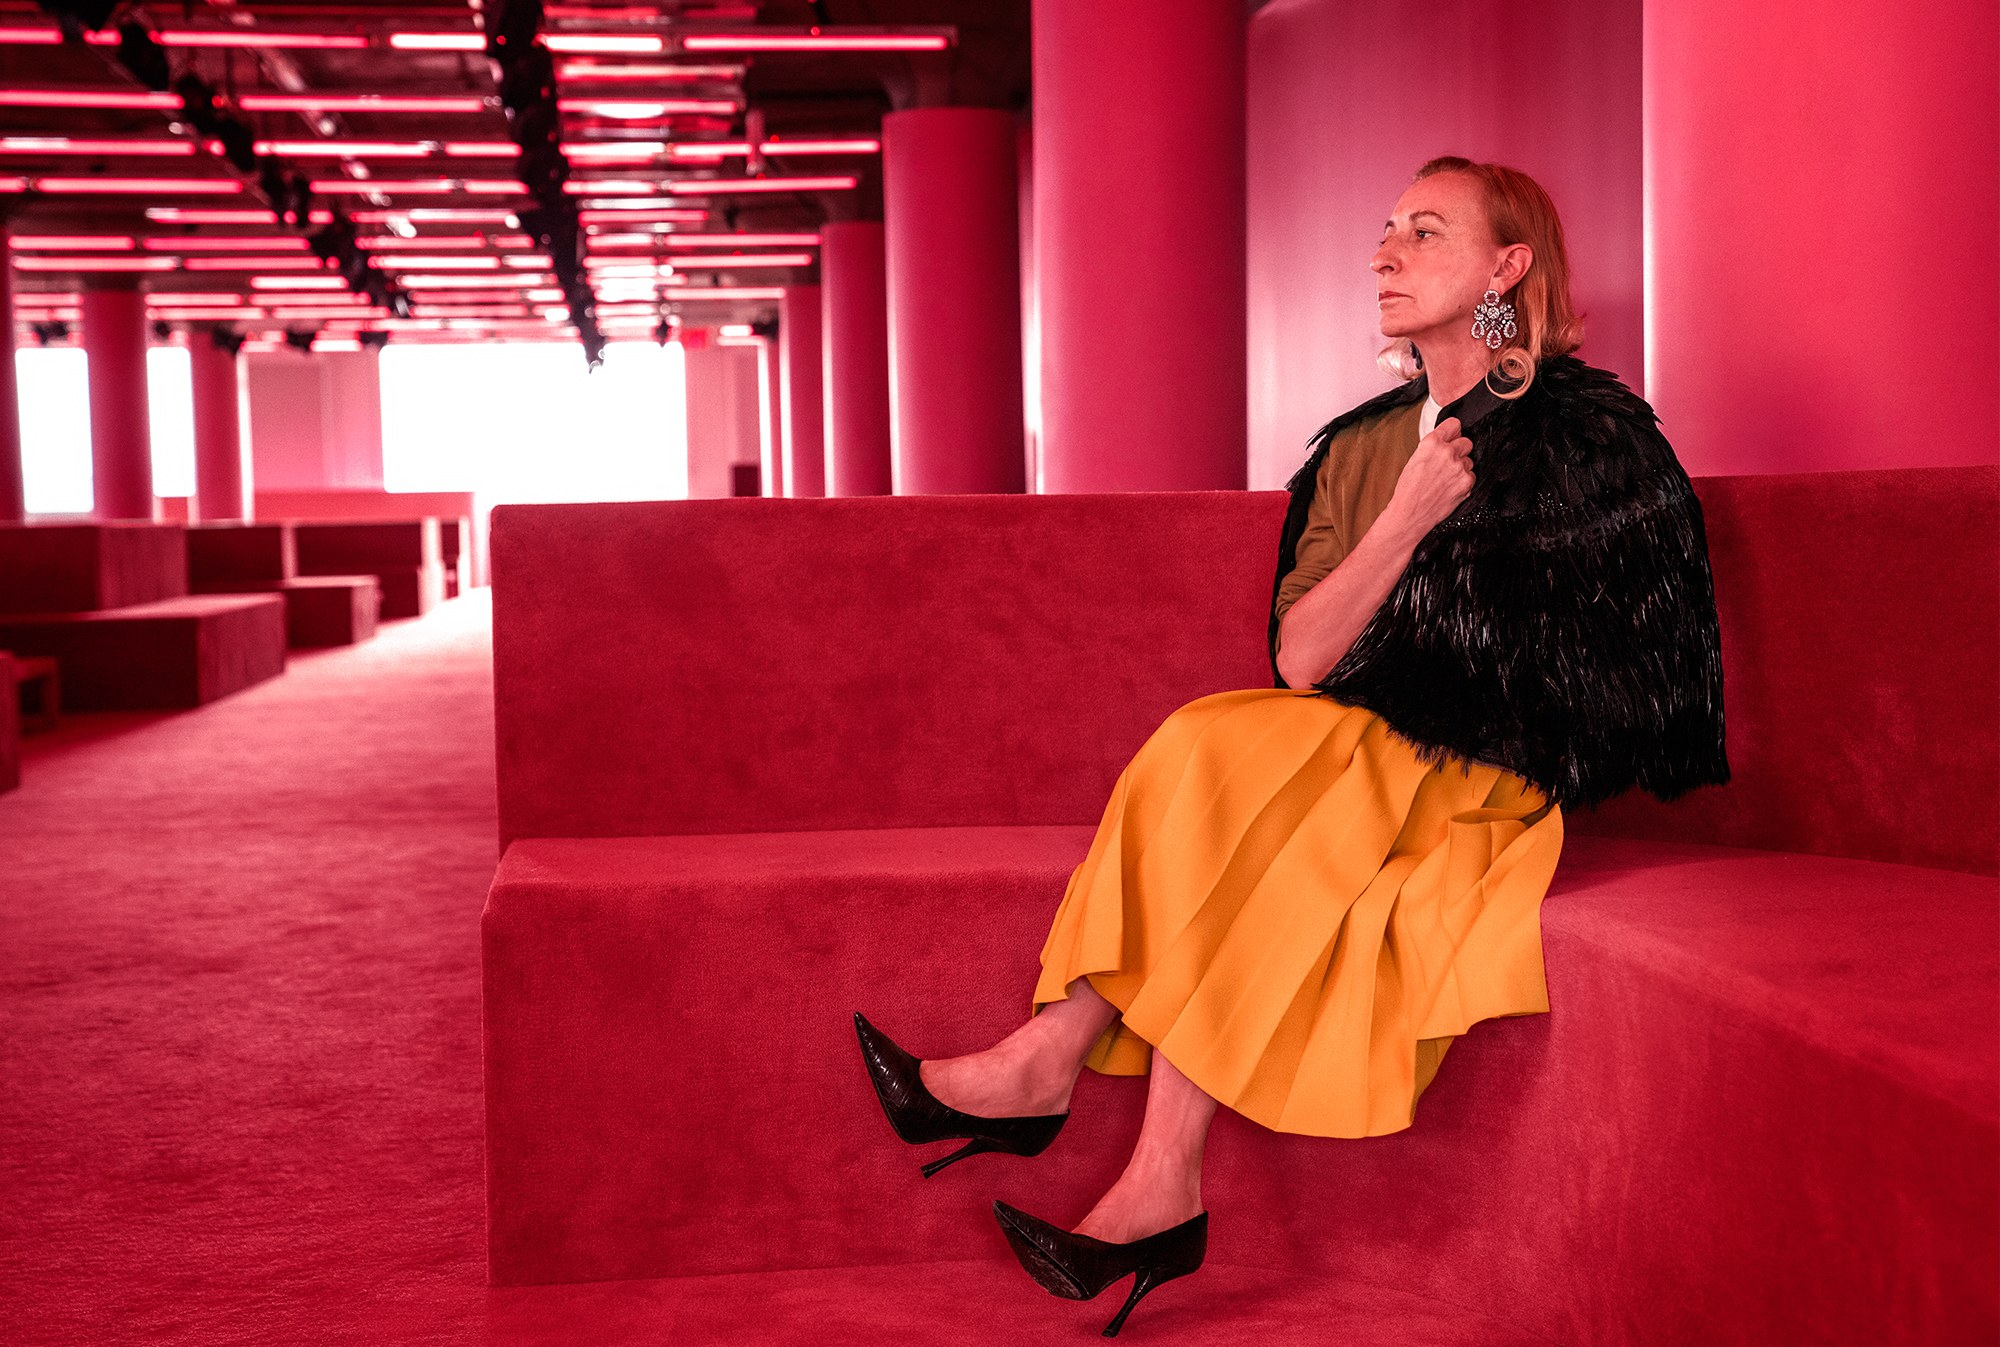 In the 1980s, Miuccia Prada changed luxury fashion irrevocably by introducing nylon to the catwalk. Three decades on, as she tells Claudia Croft, she remains a revolutionary.